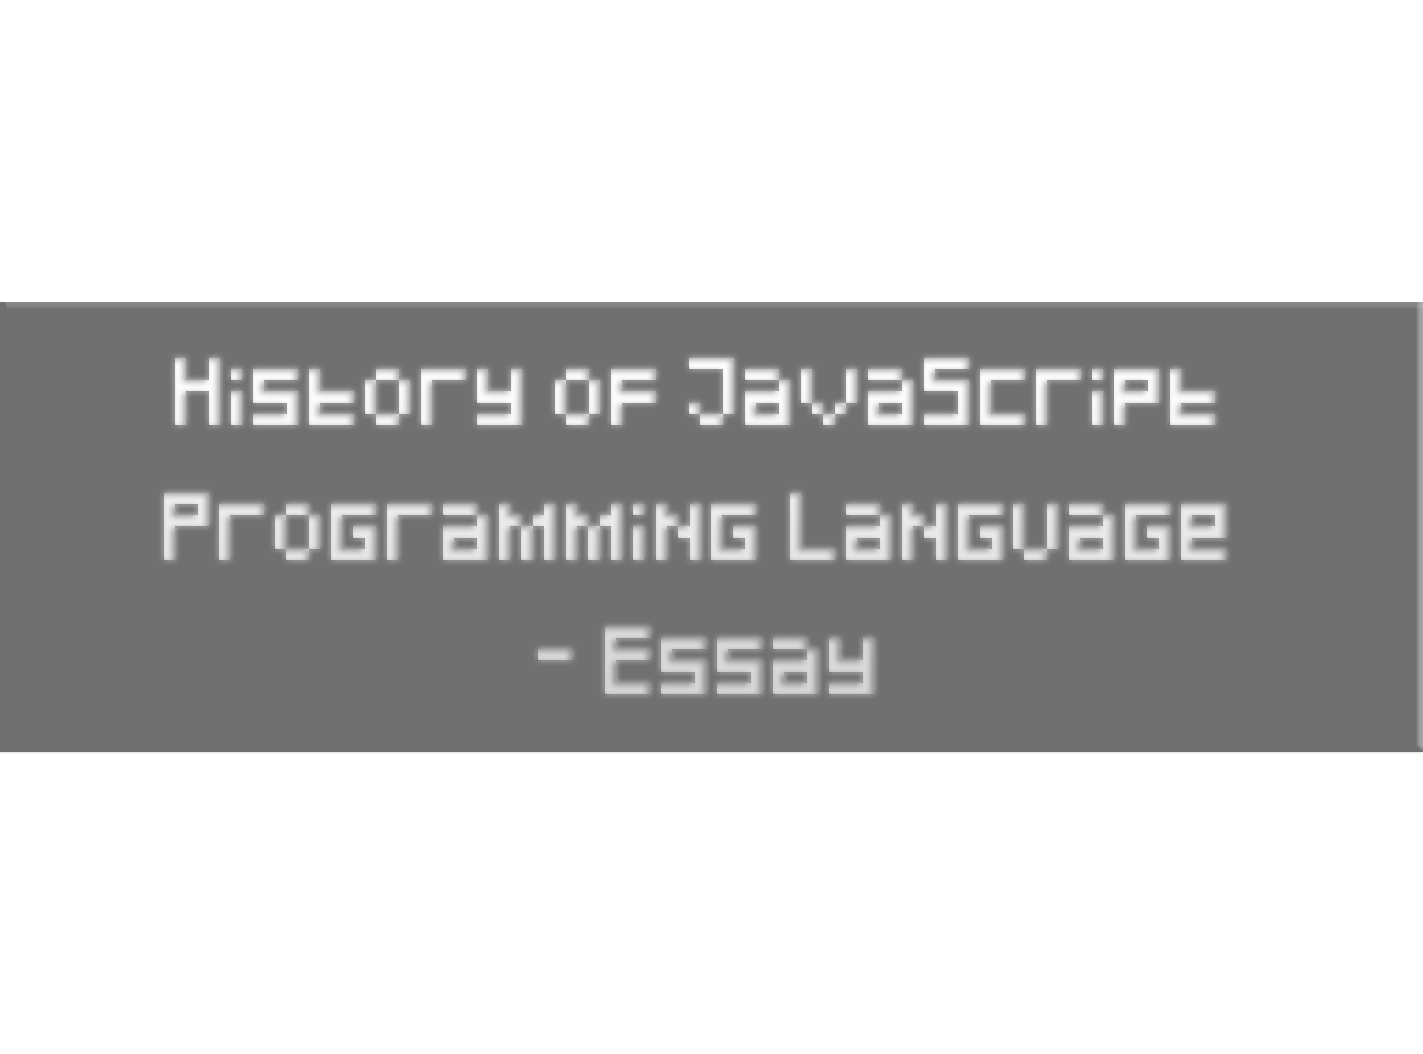 javascript is a/an language